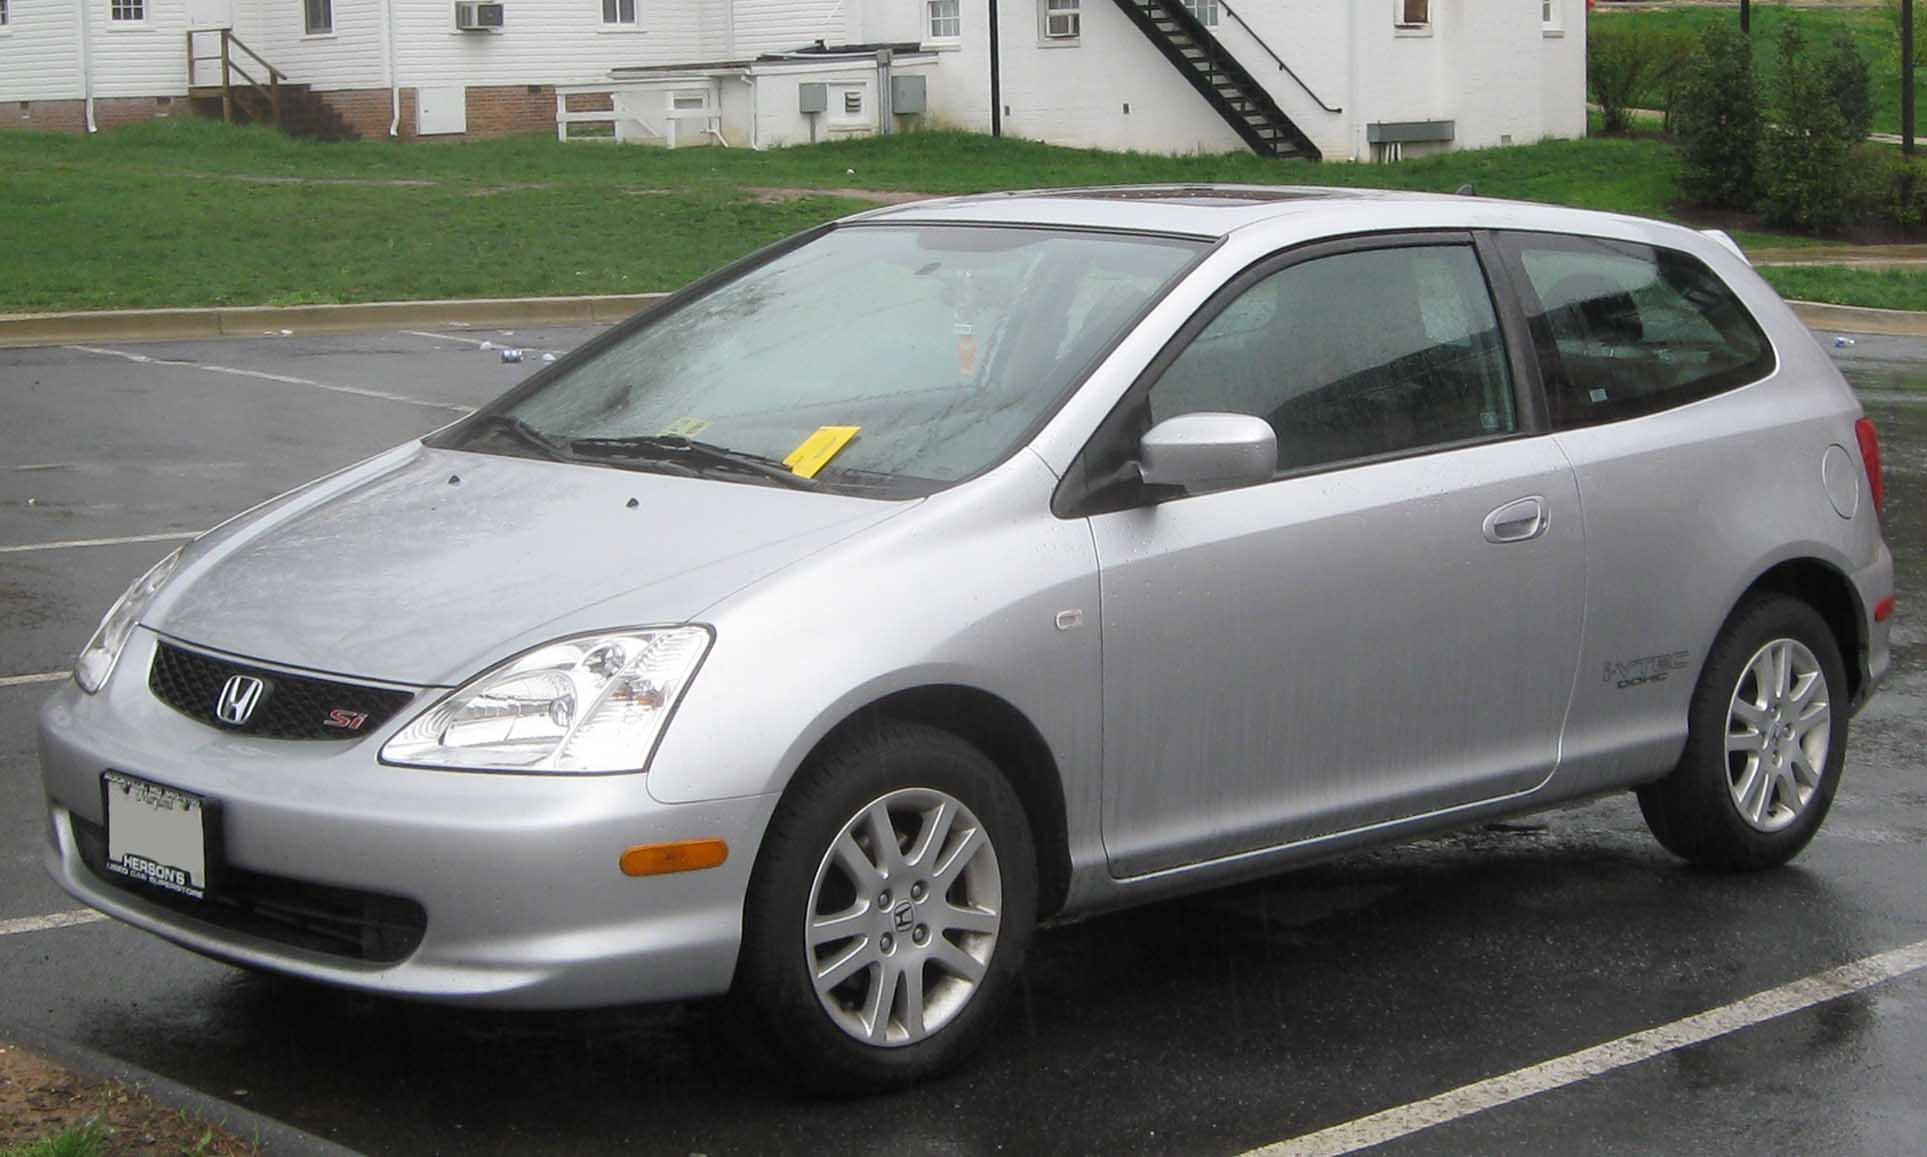 Honda Civic Hatchback Vii 2002 #2